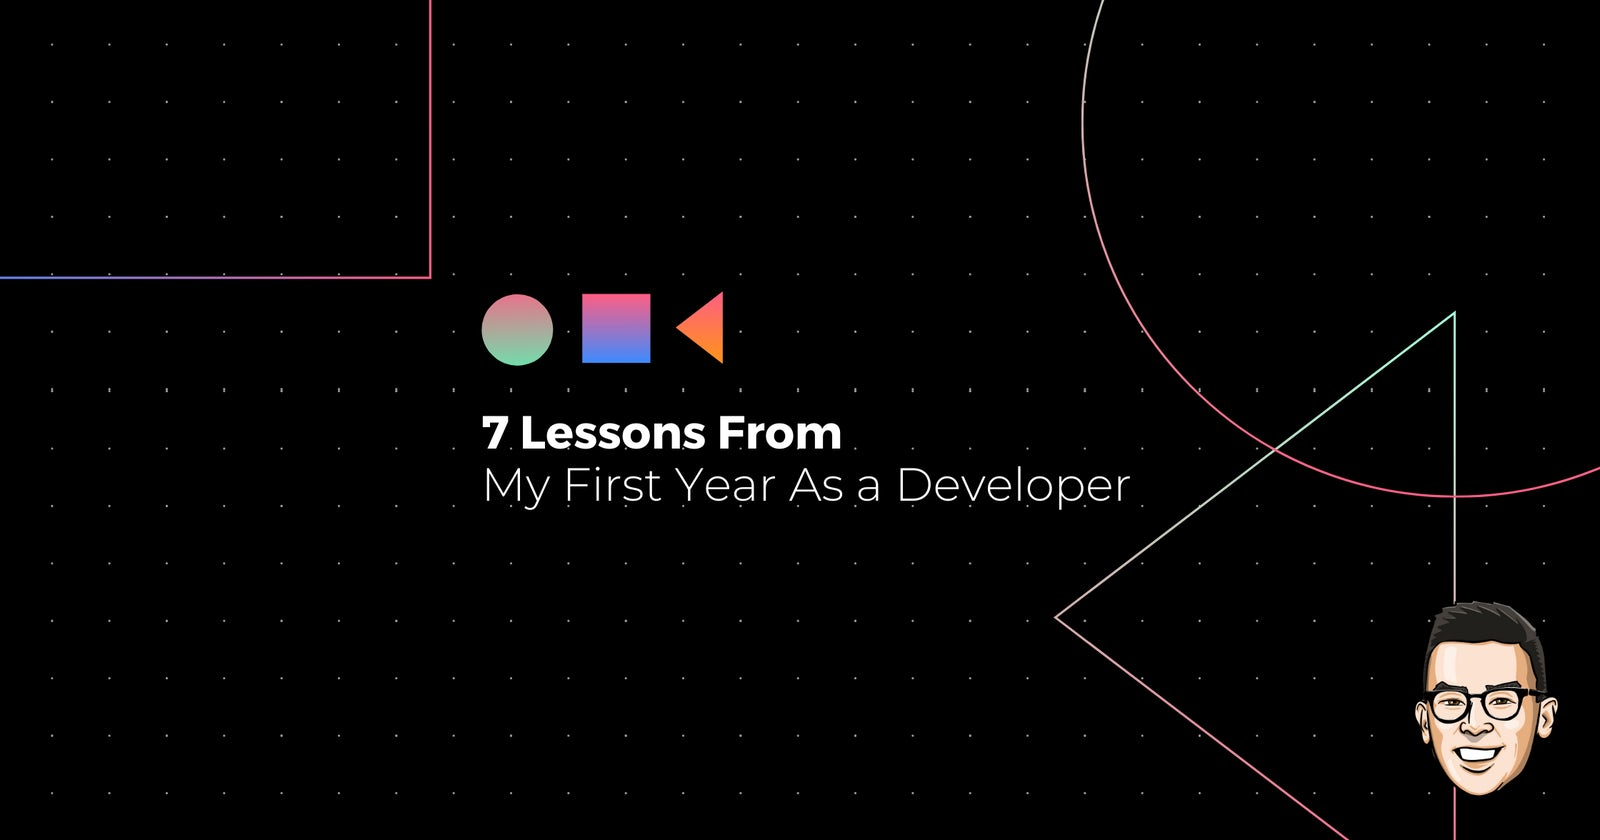 7 Lessons From My First Year As a Developer